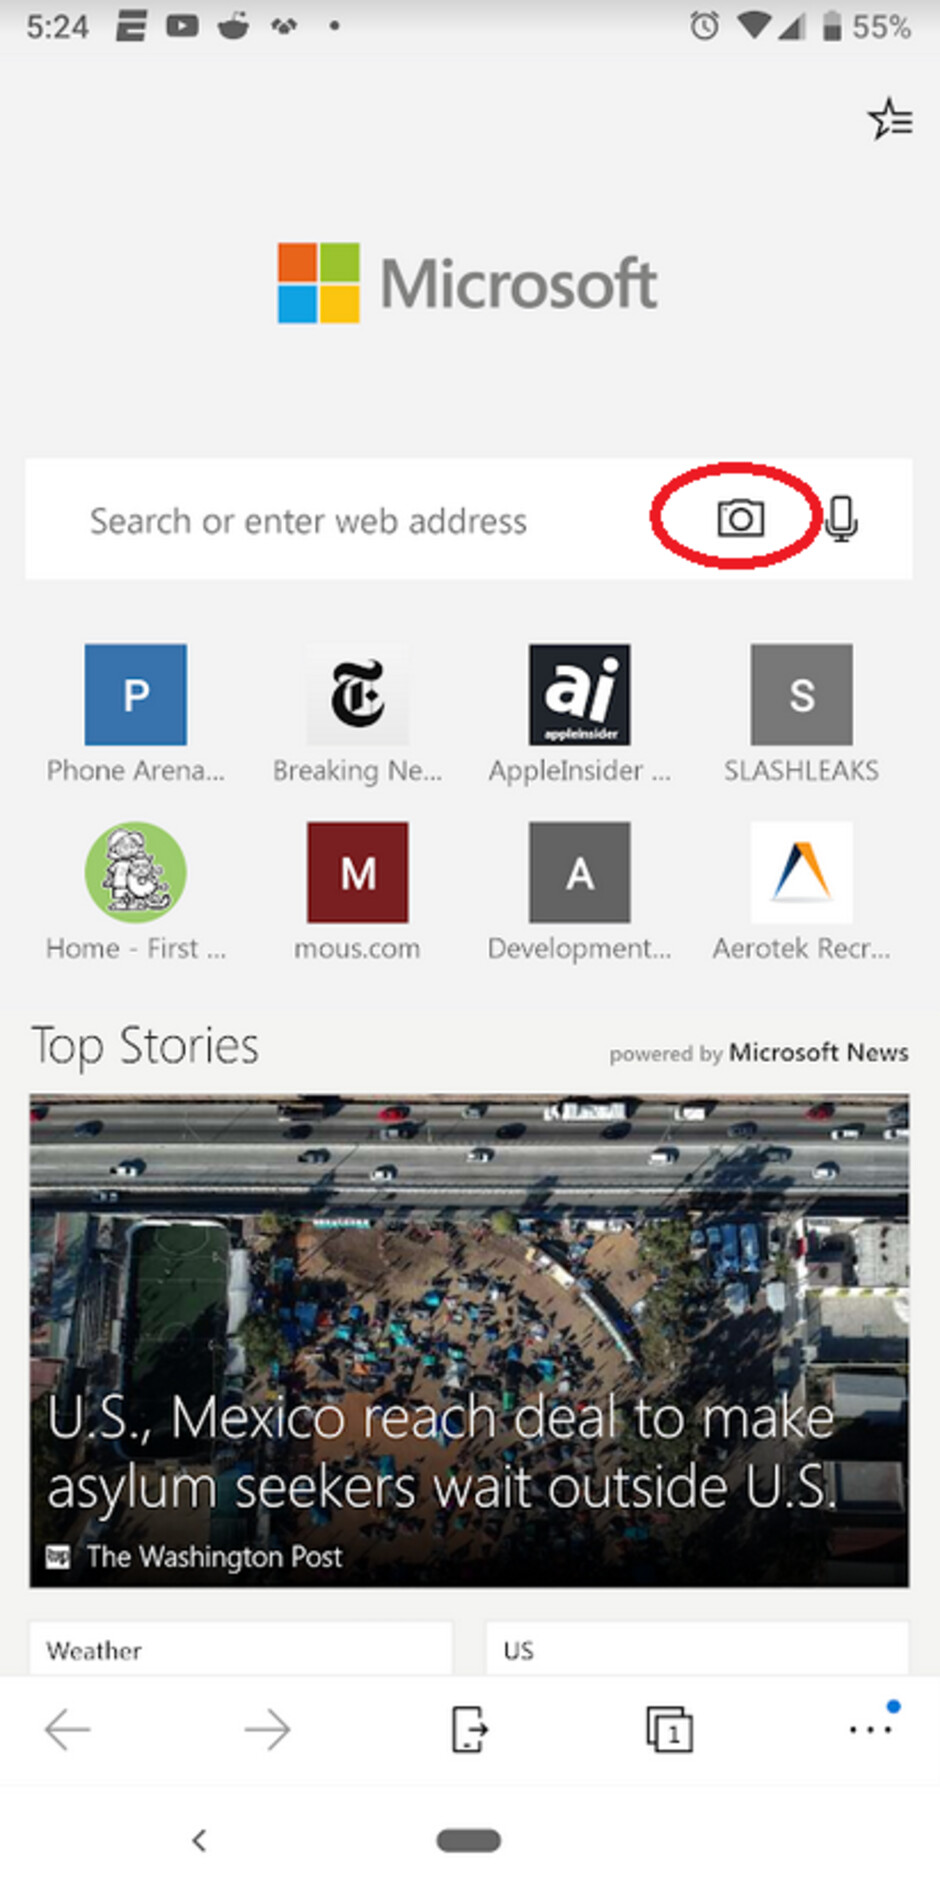 Use the camera icon in Edge's search bar for Visual Search - Update now available for the Android version of the Microsoft Edge browser app